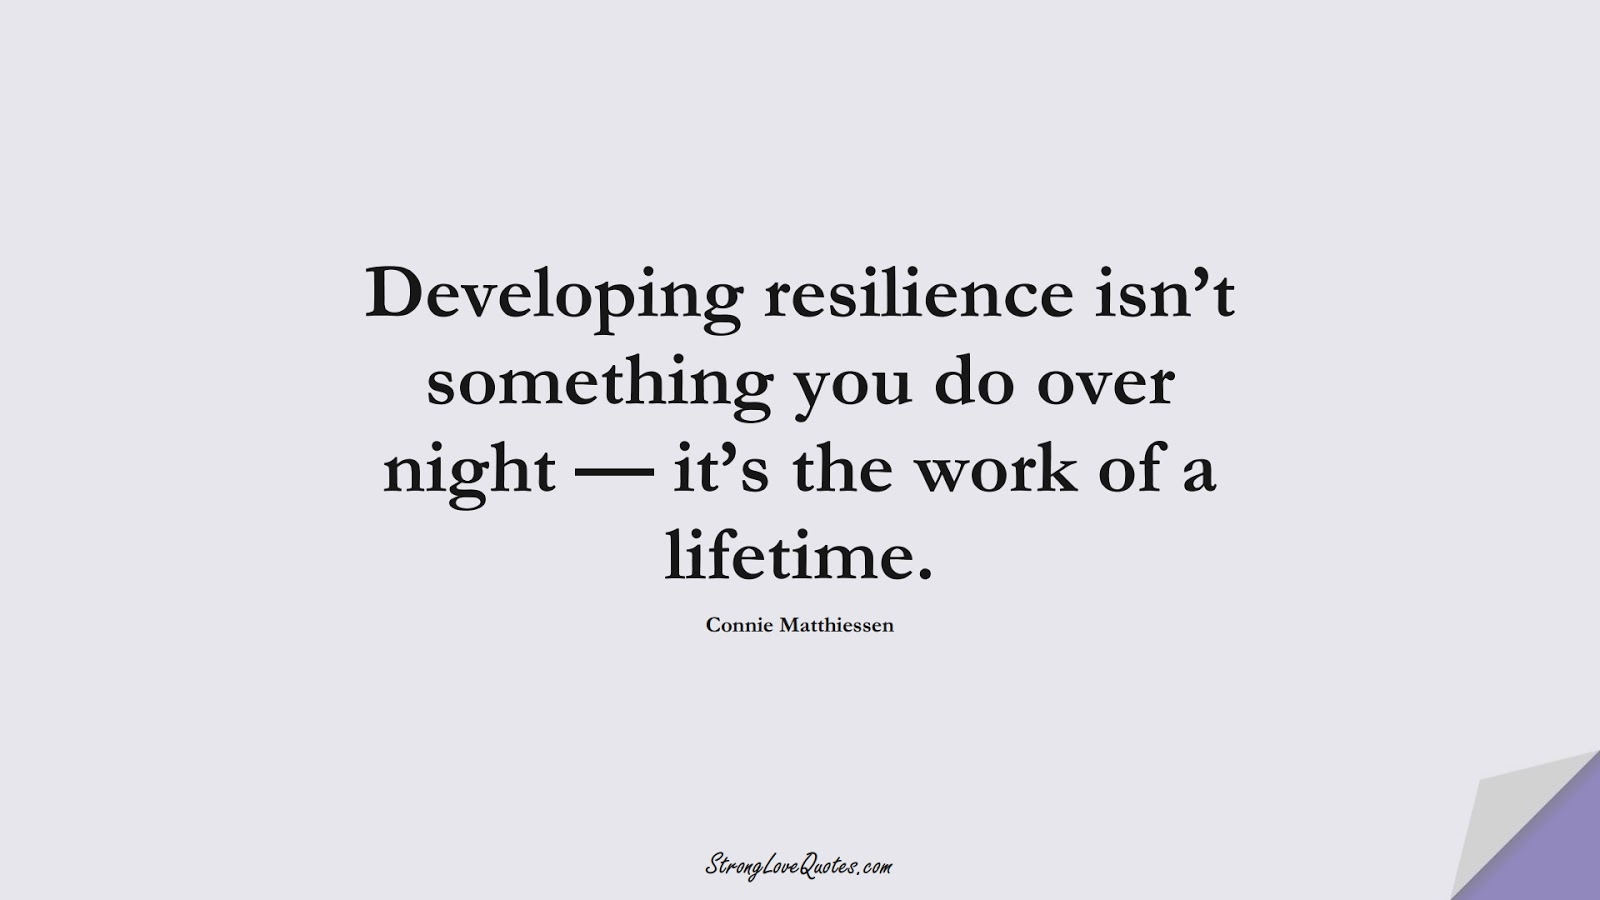 Developing resilience isn't something you do over night — it's the work of a lifetime. (Connie Matthiessen);  #EducationQuotes